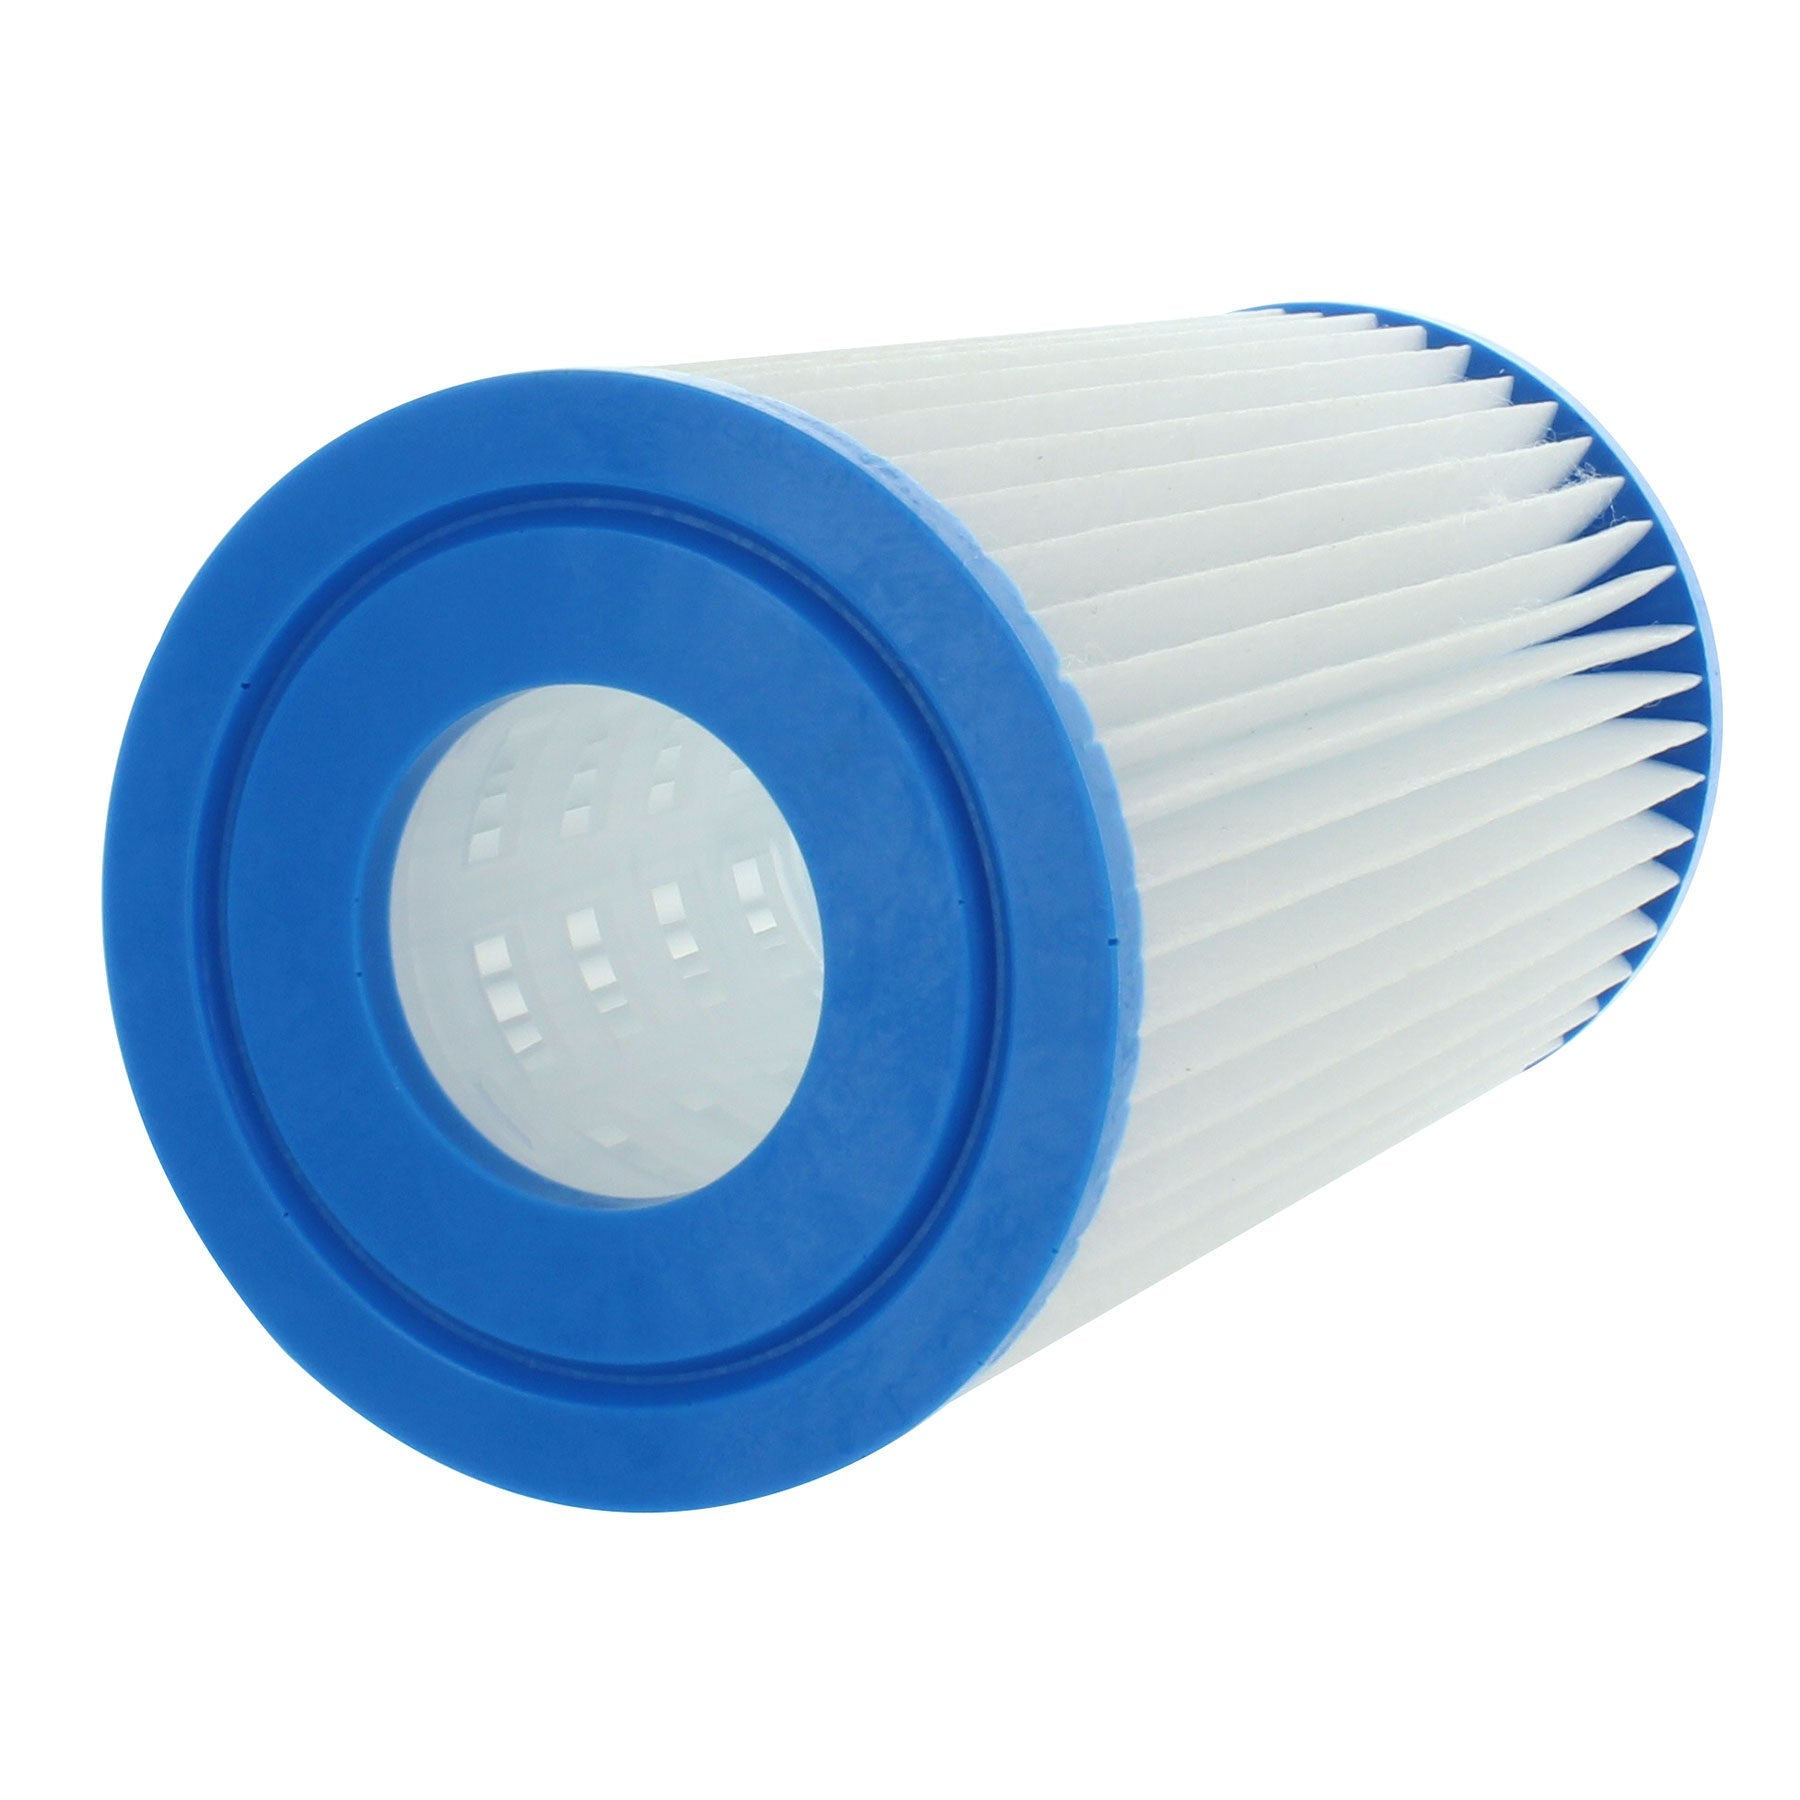 Replaces Unicel C-4607, Pleatco PC7-120 - Pool & Spa Filter Cartridge-Filter Cartridge-FilterDeal.com